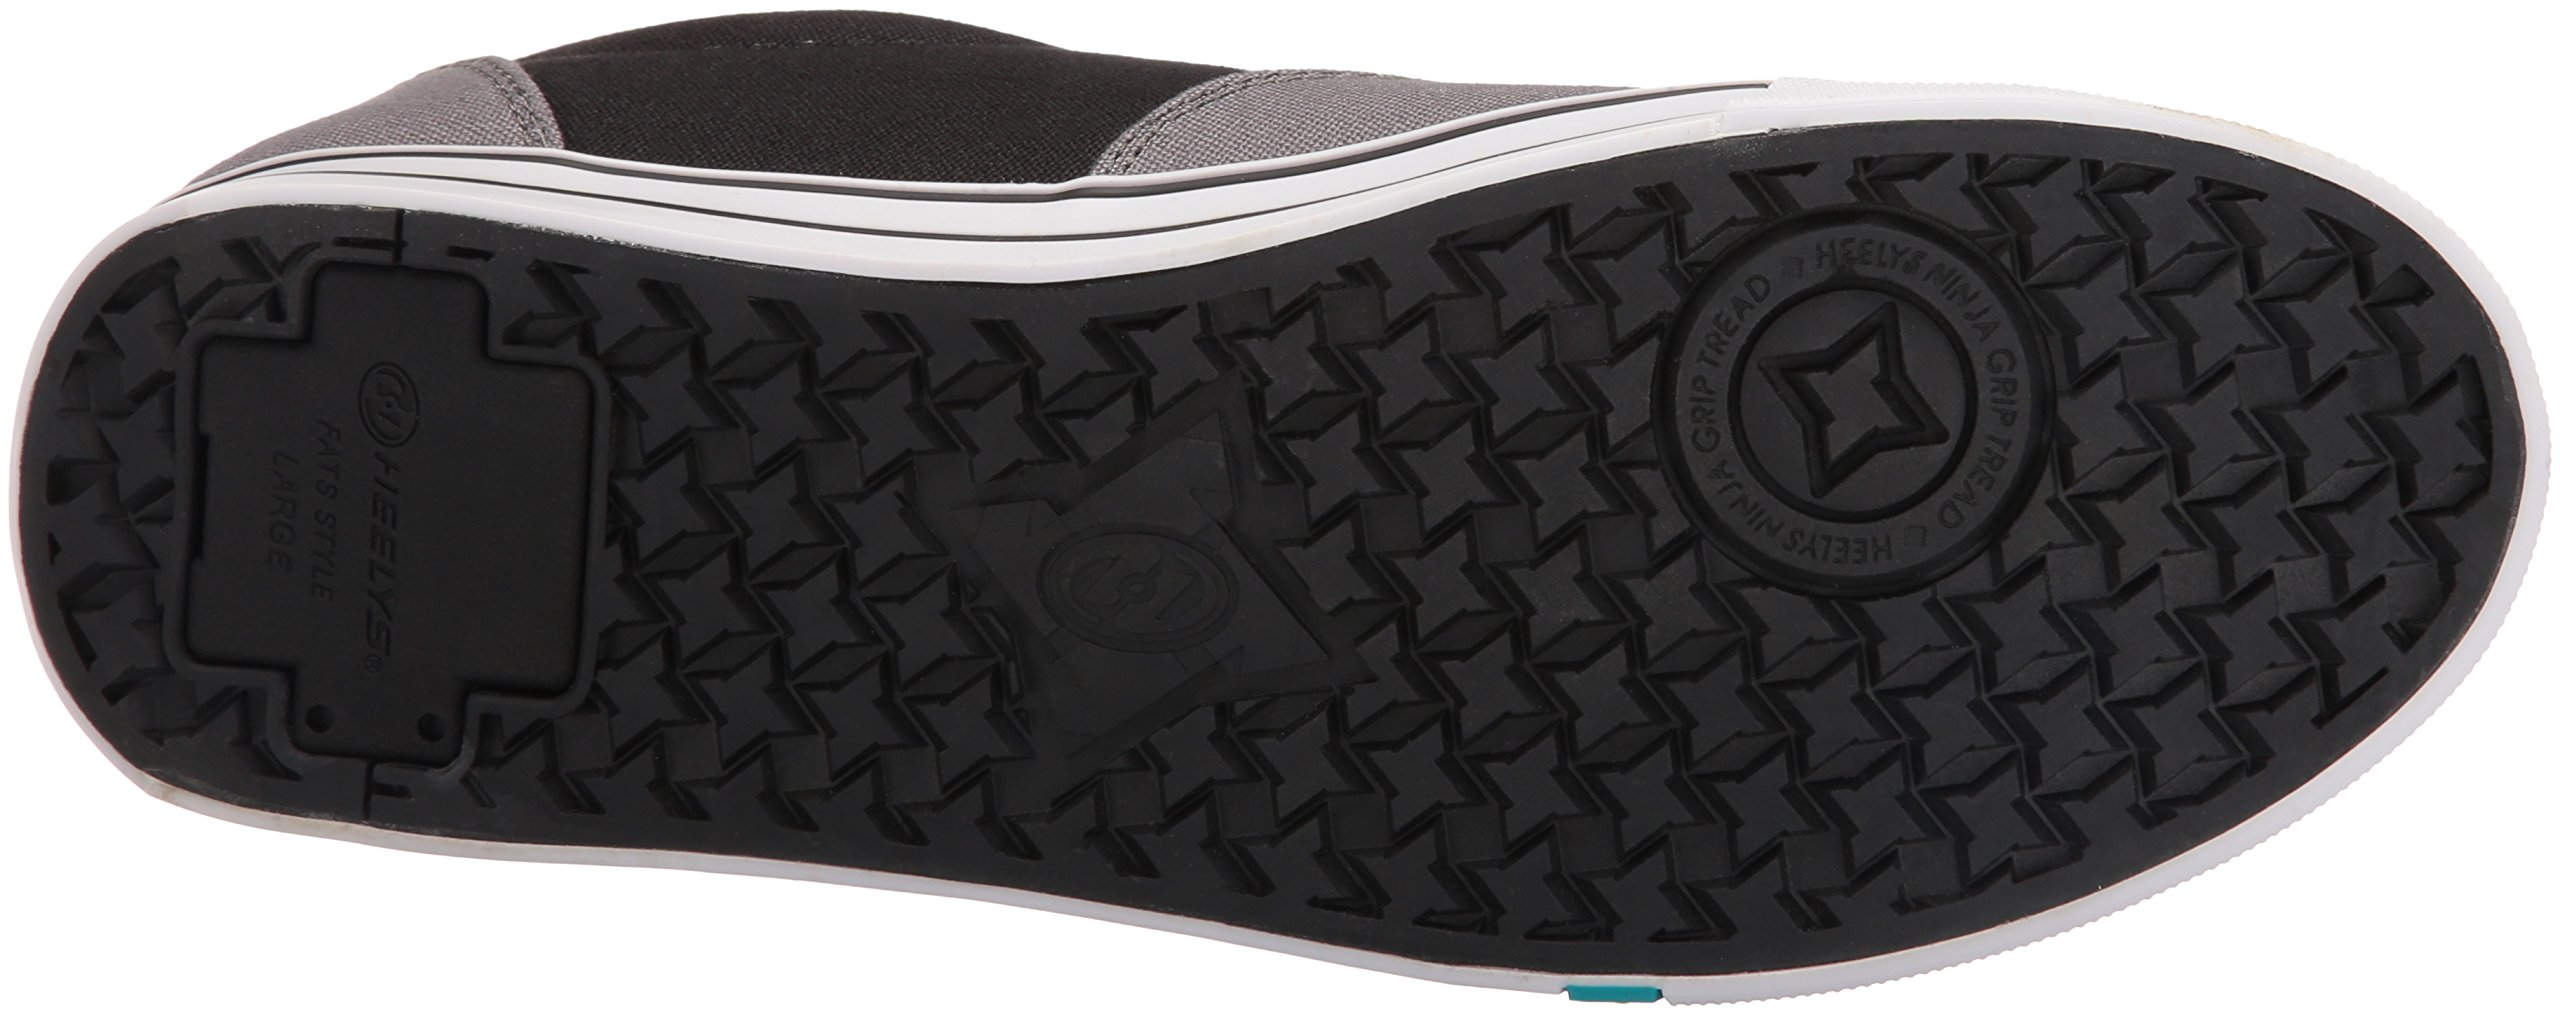 Heelys Men's Launch Fashion Sneaker Charcoal/Black/Lime 10 M US by Heelys (Image #3)